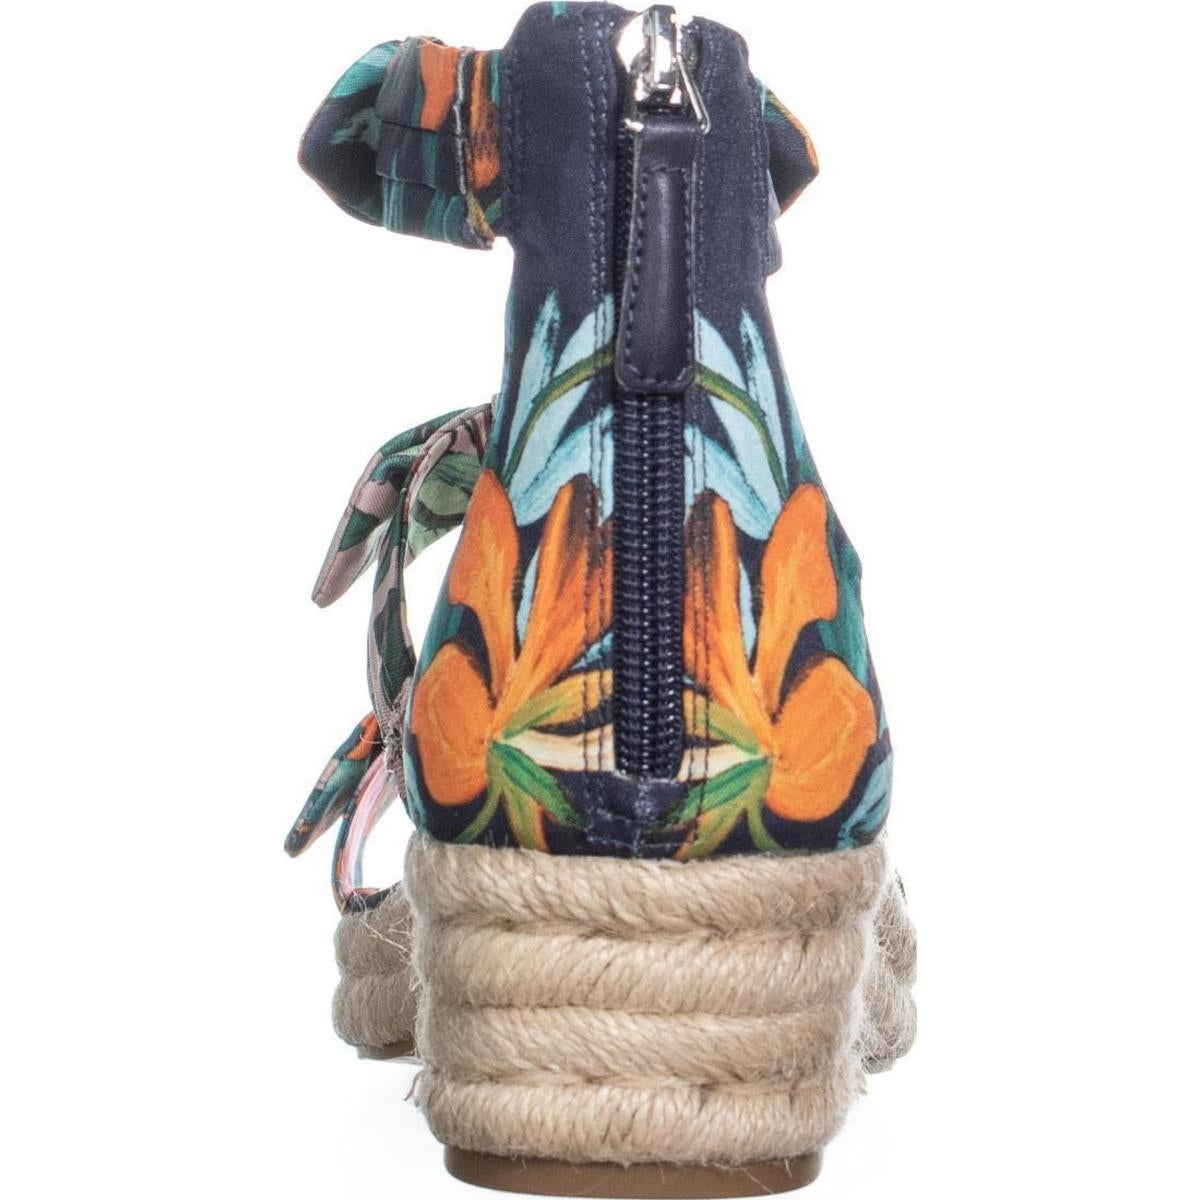 13357ab624 Shop Nine West Allegro Bow Espadrilles Sandals, Navy Multi - On Sale - Free  Shipping Today - Overstock - 22809187